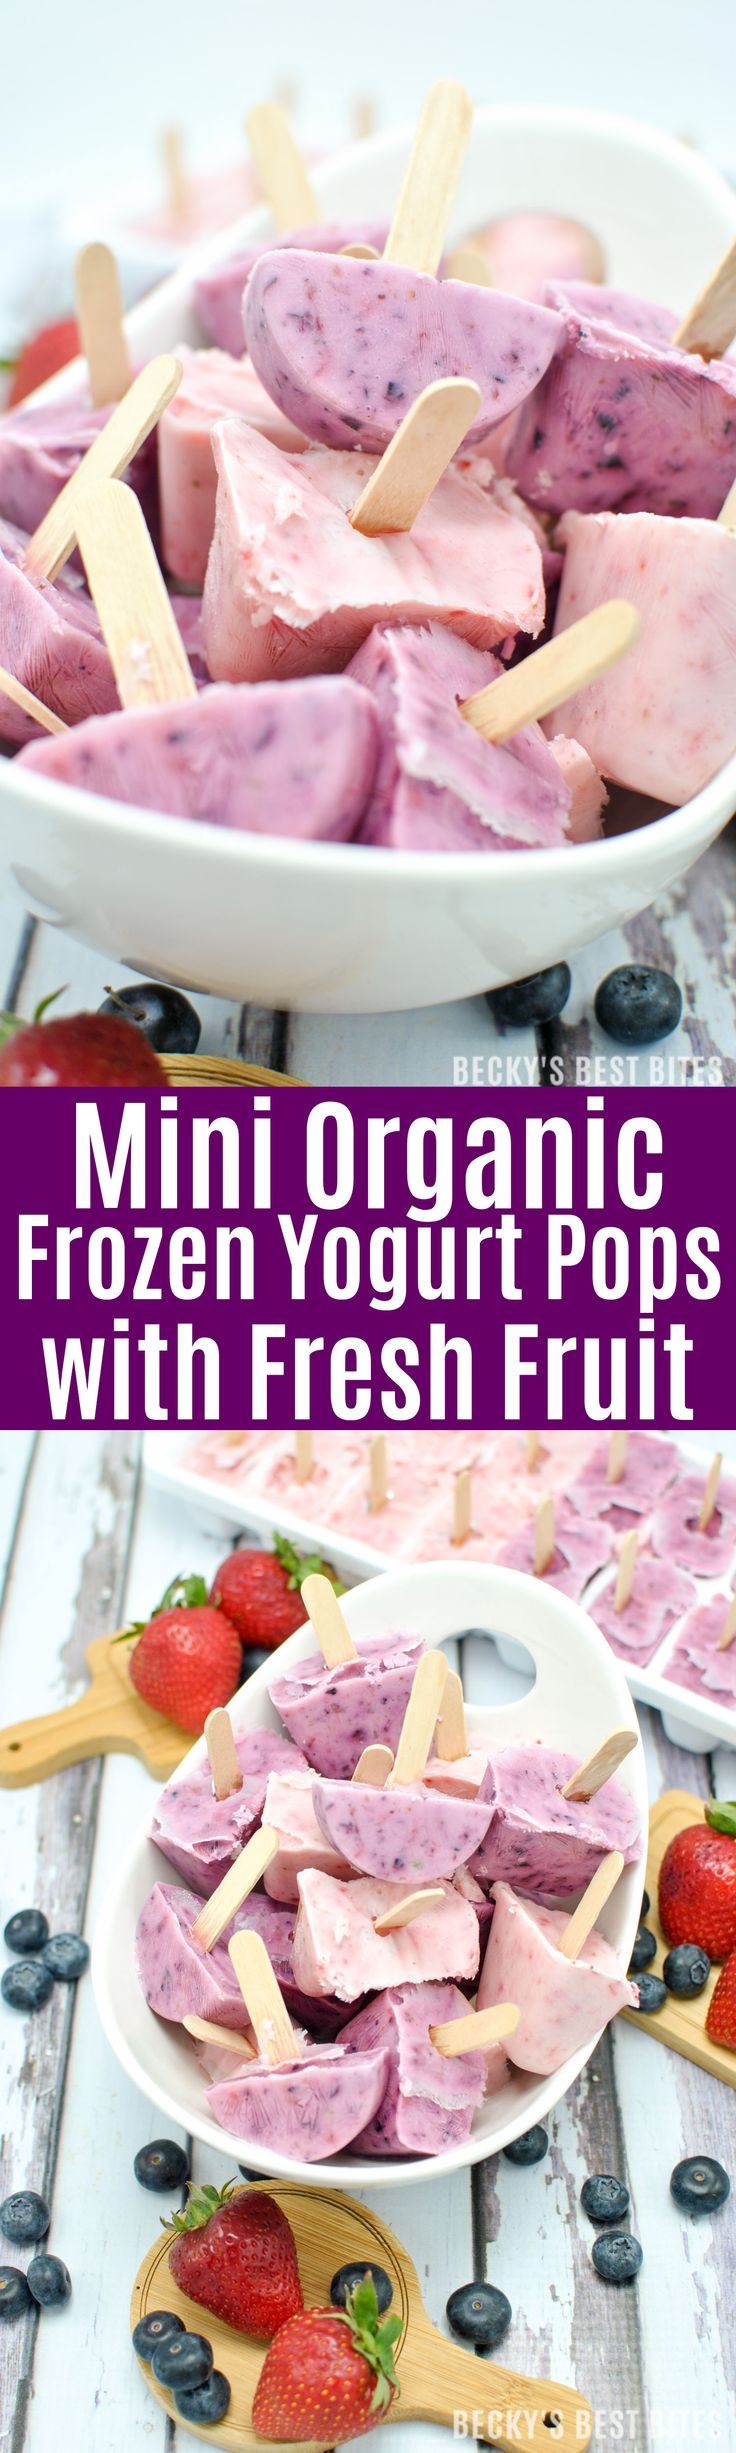 Mini Organic Frozen Yogurt Pops with Fresh Fruit is an easy healthy summer kid-friendly snack made with Annie's Organic Whole Milk Yogurt and organic fruit. | beckysbestbites.com